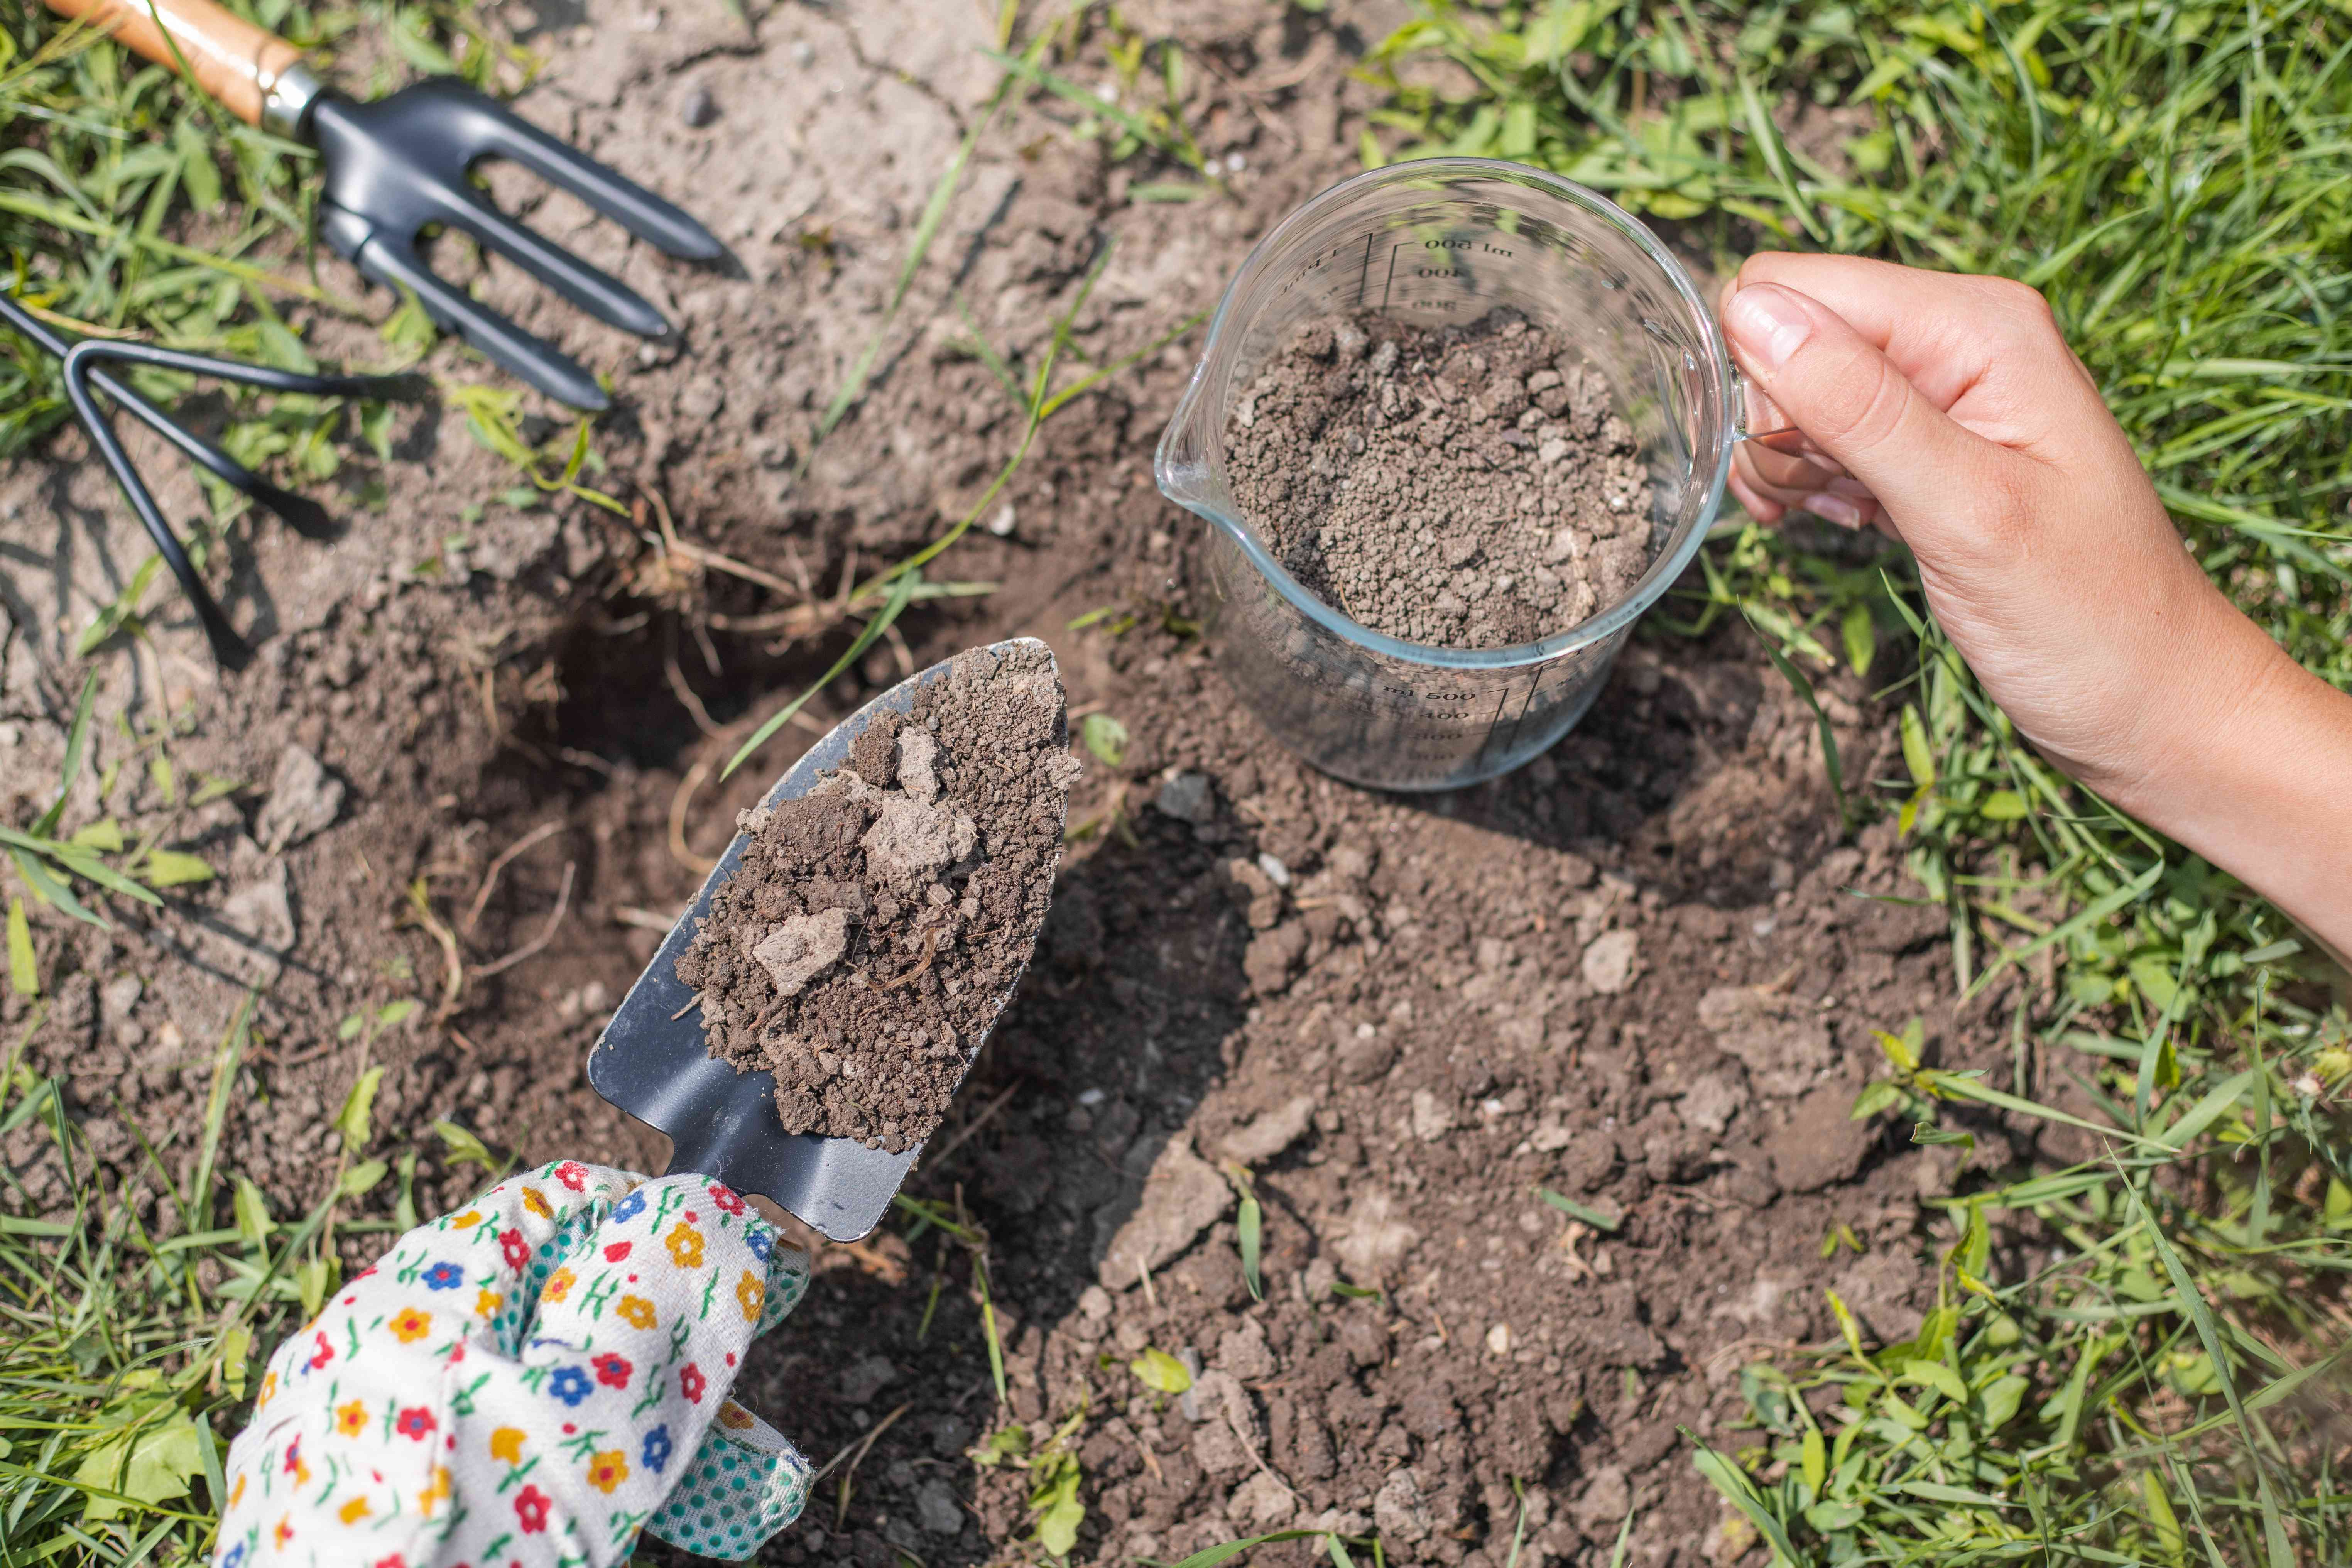 hand with gardening tools and glass measuring cup collecting soil for testing